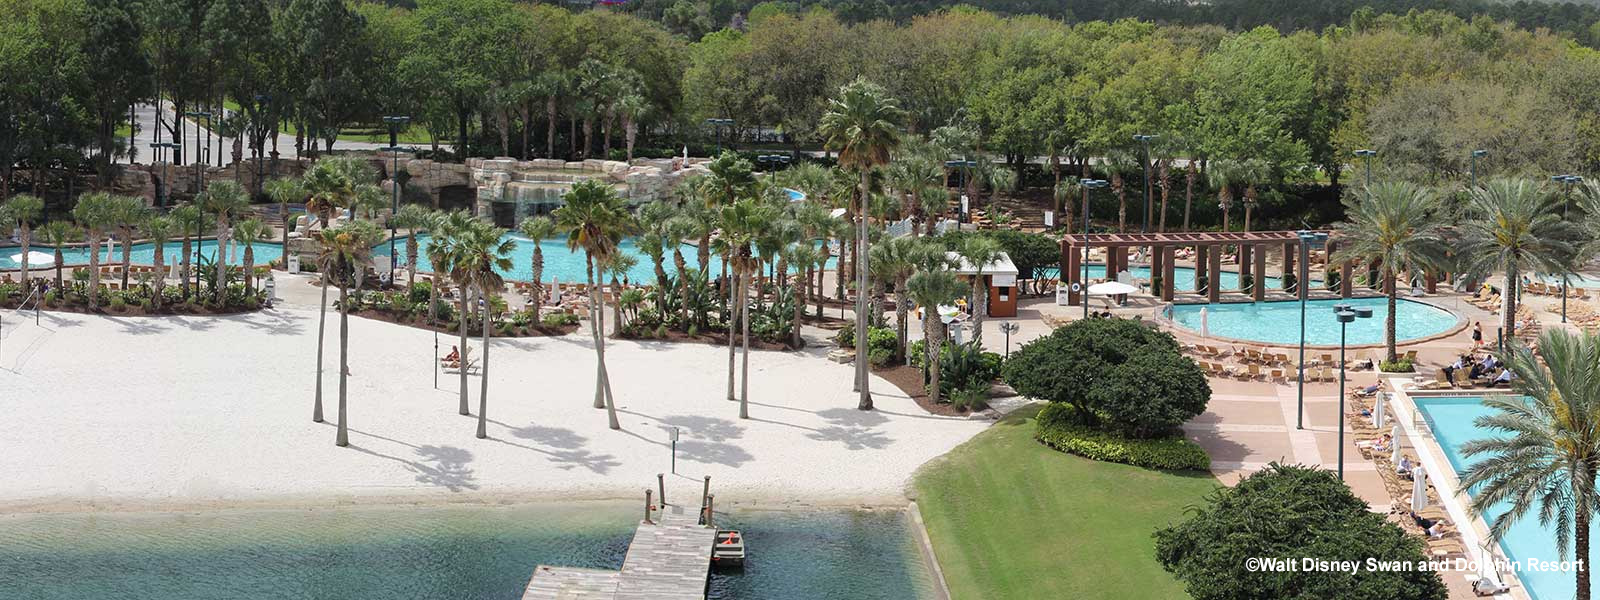 9 Reasons To Stay At The Walt Disney World Swan And Dolphin Resort